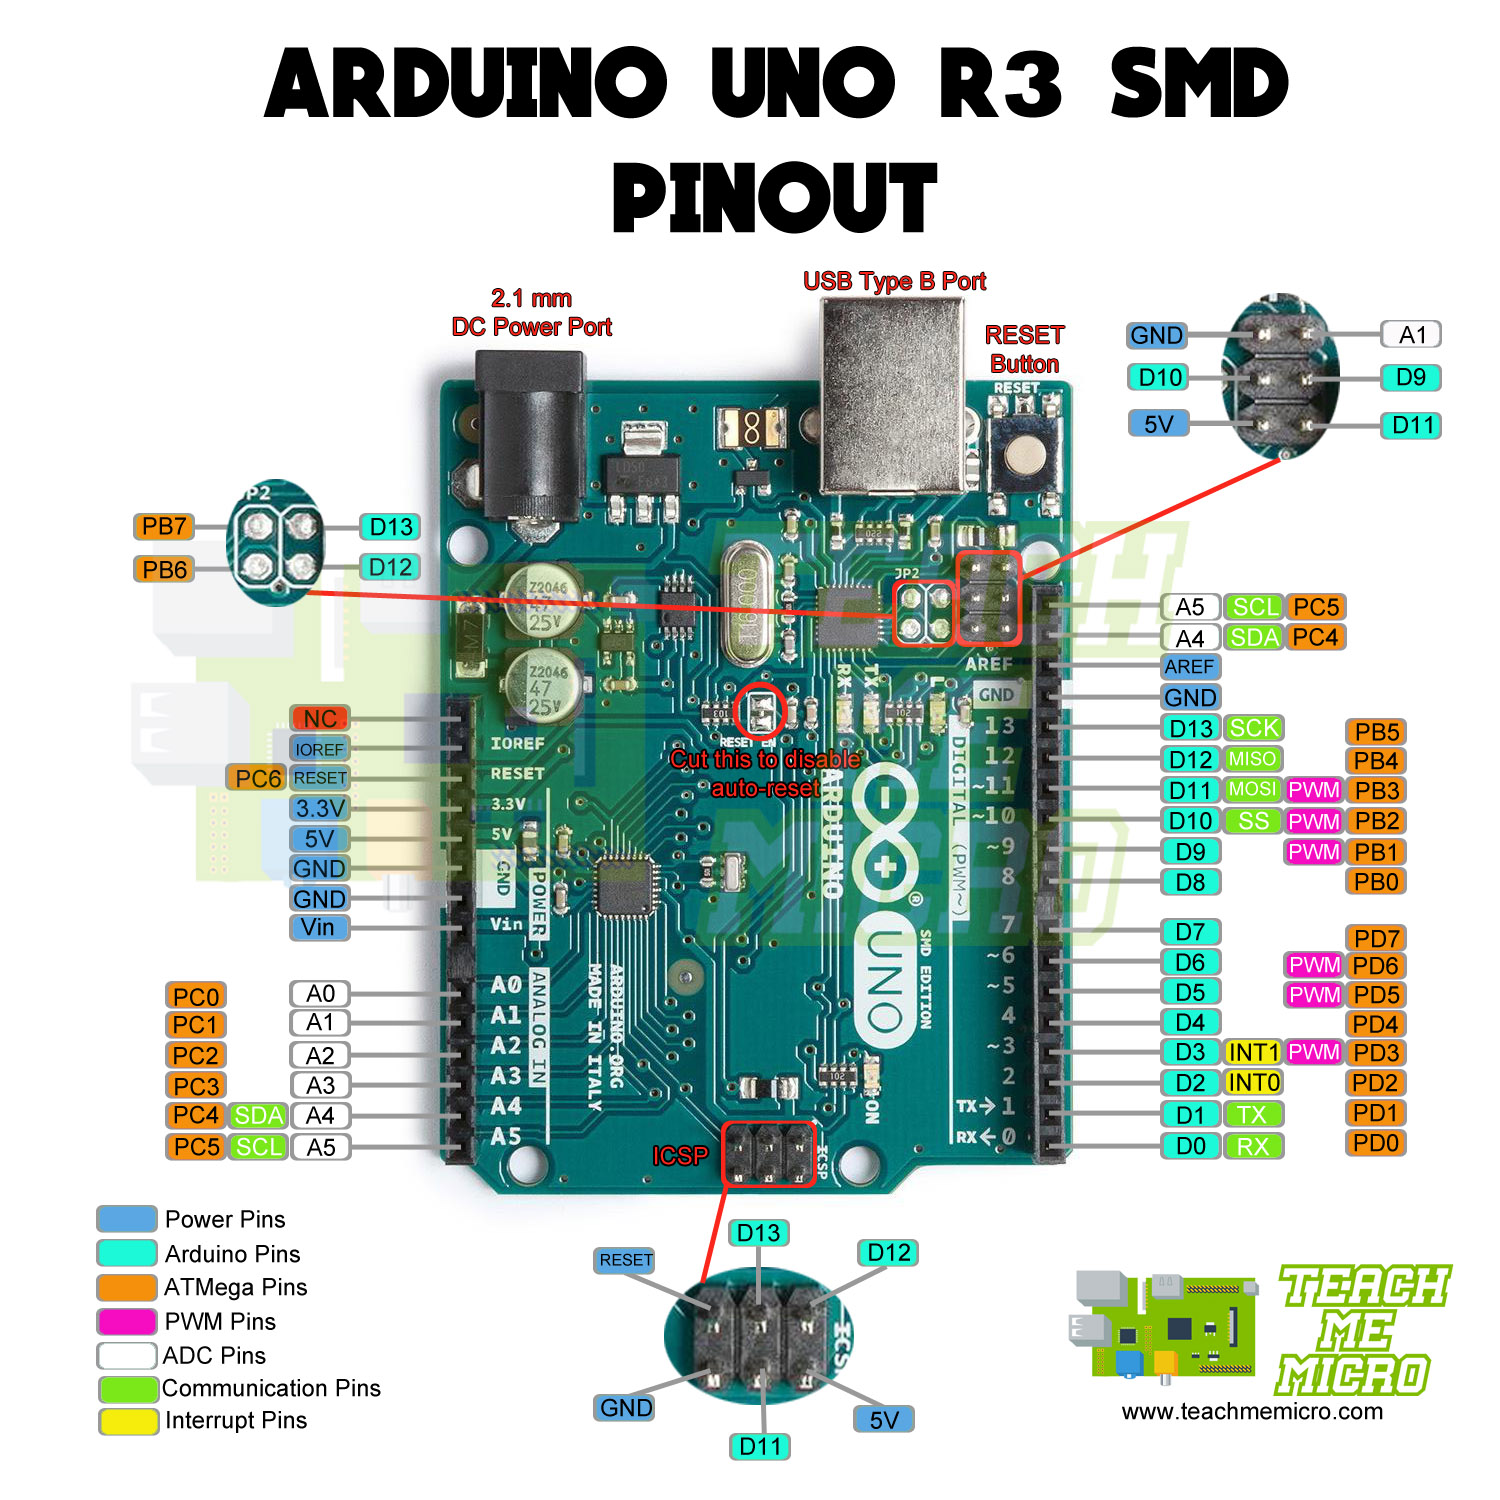 Arduino UNO Pinout Diagram | Microcontroller Tutorials